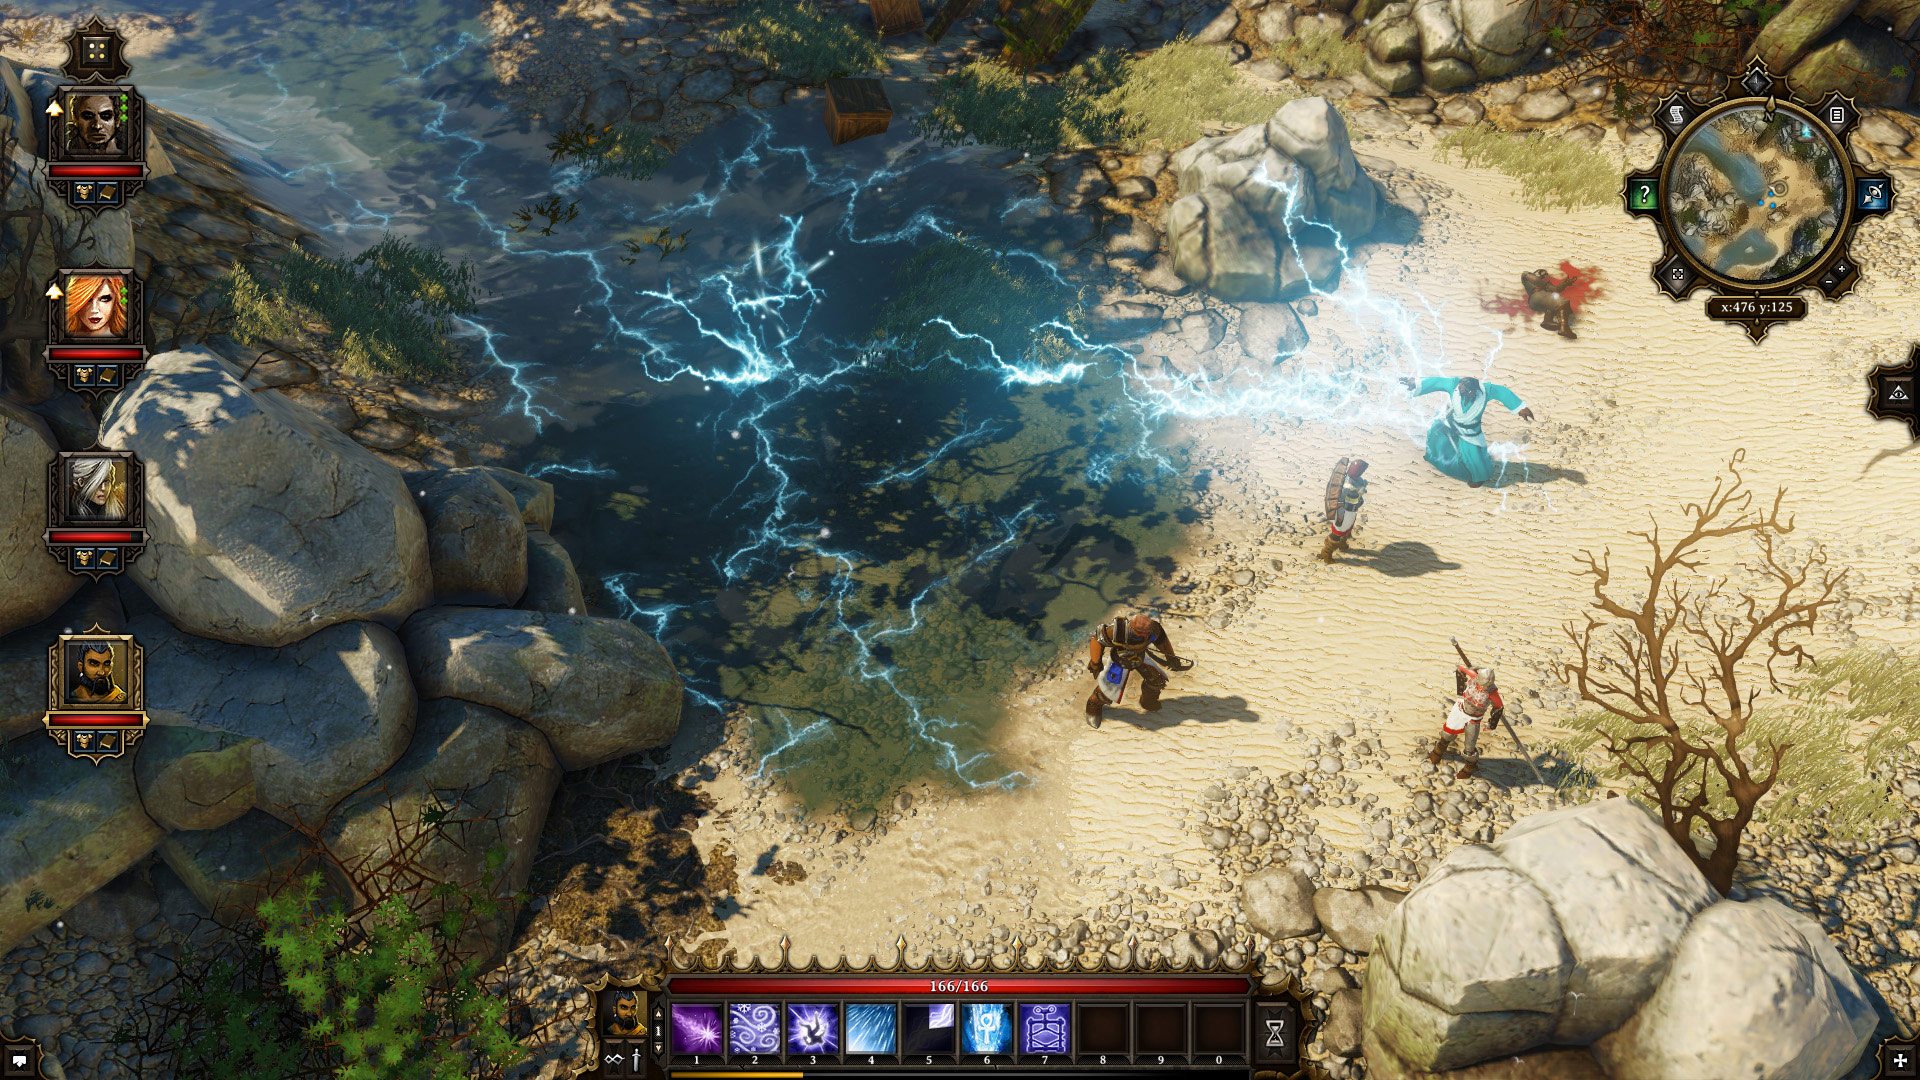 Divinity: Original Sin electrified water